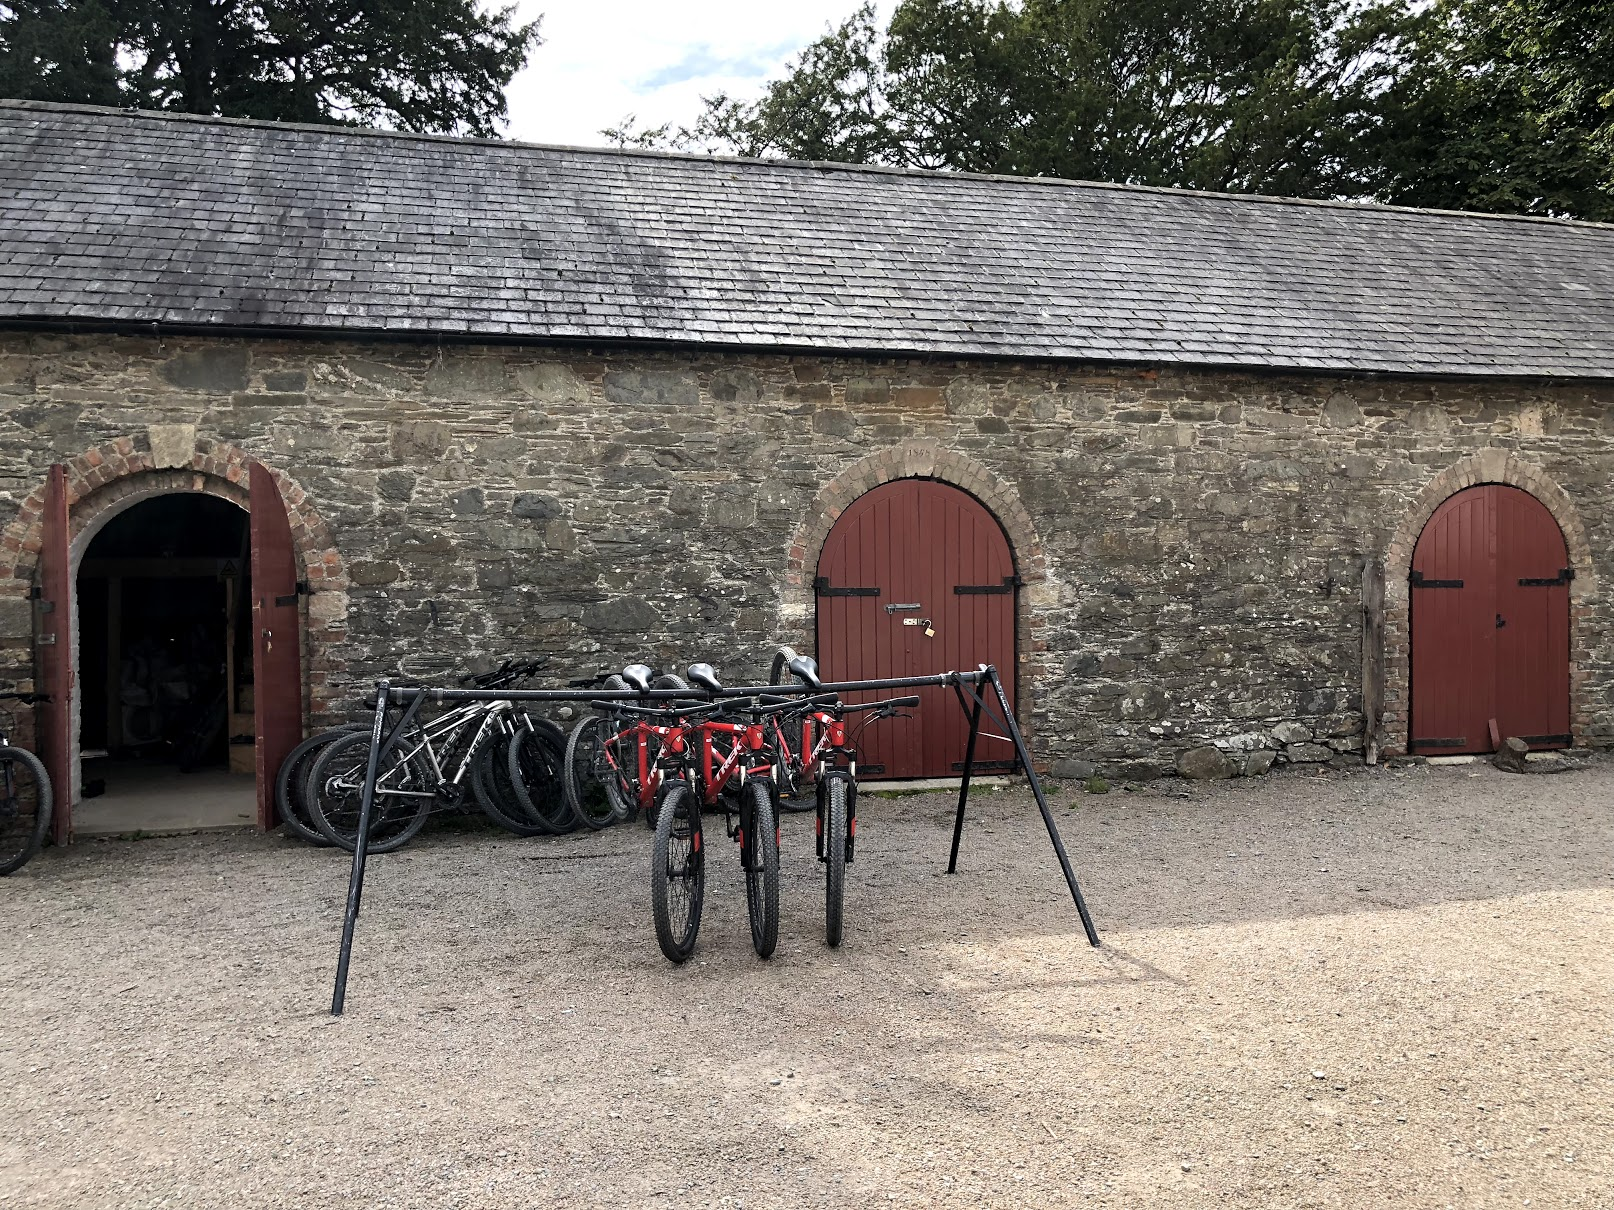 Tyrion Meets Jon & Ned Kills Lady  Apart from the bikes in the picture, this is the location where Tyrion and Jon Snow first meet. It is also the location where Ned is commanded to kill Lady, Sansa's DIre Wolf, in place of Nymeria (Arya's).